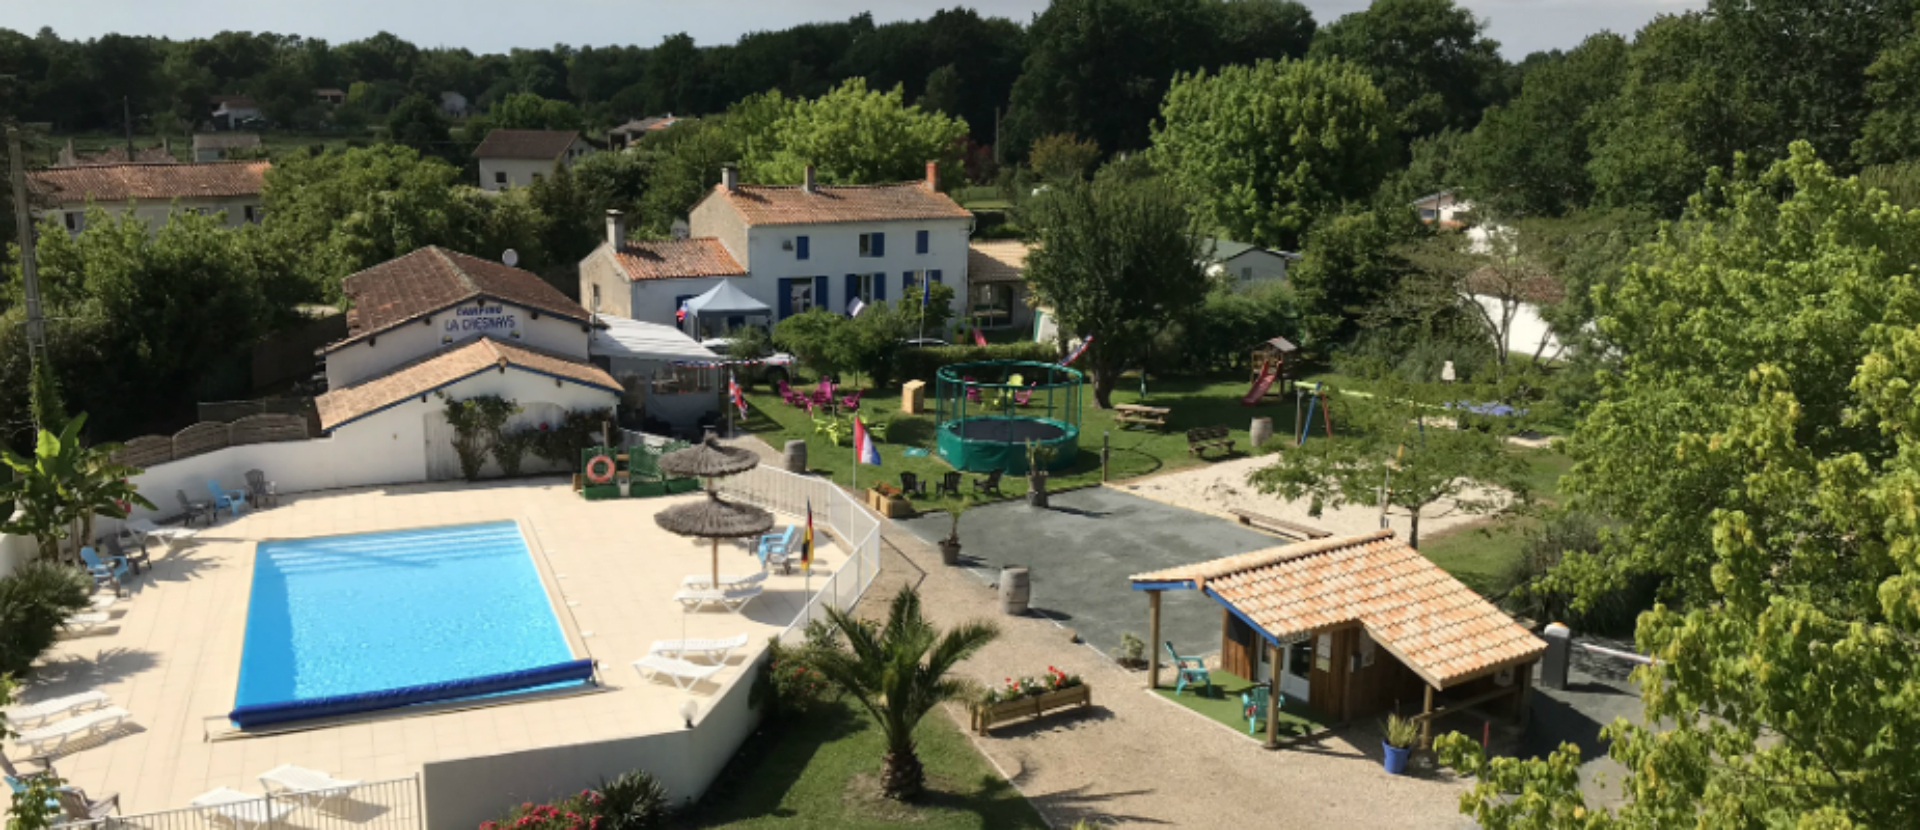 Camping la chesnays - Montalivet -gironde